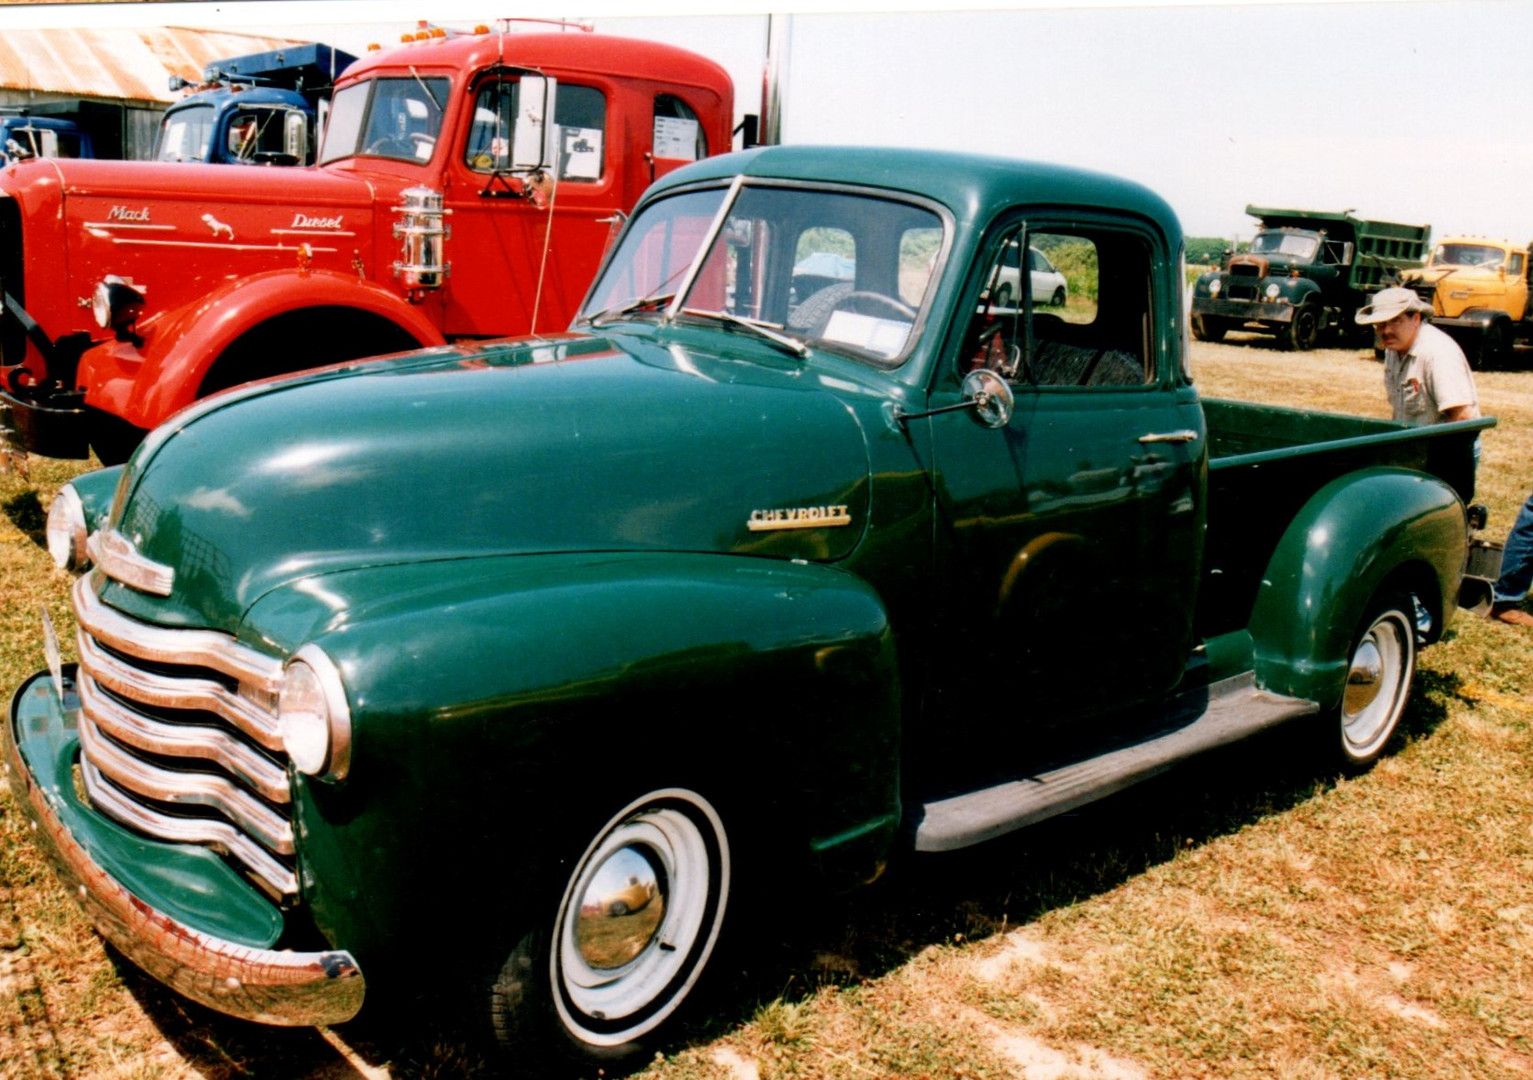 1952 Chevrolet 3100 pickup - Sandy Migotsky